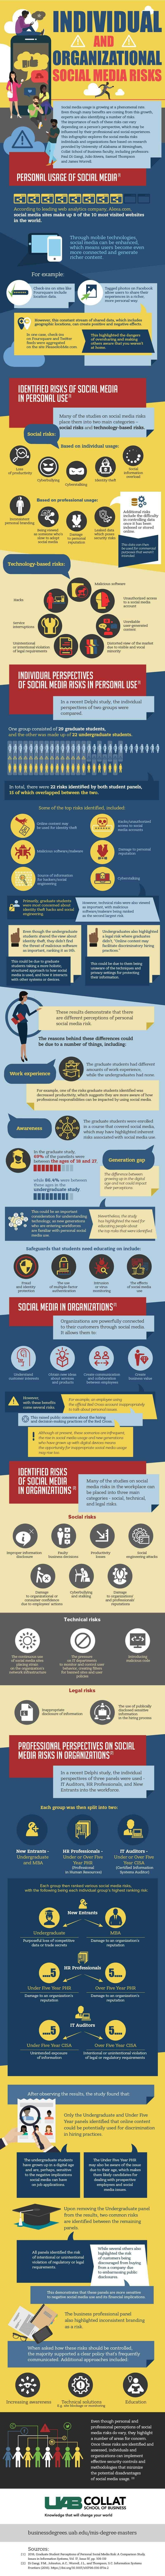 Individual & Organizational Social Media Risks #Infographic